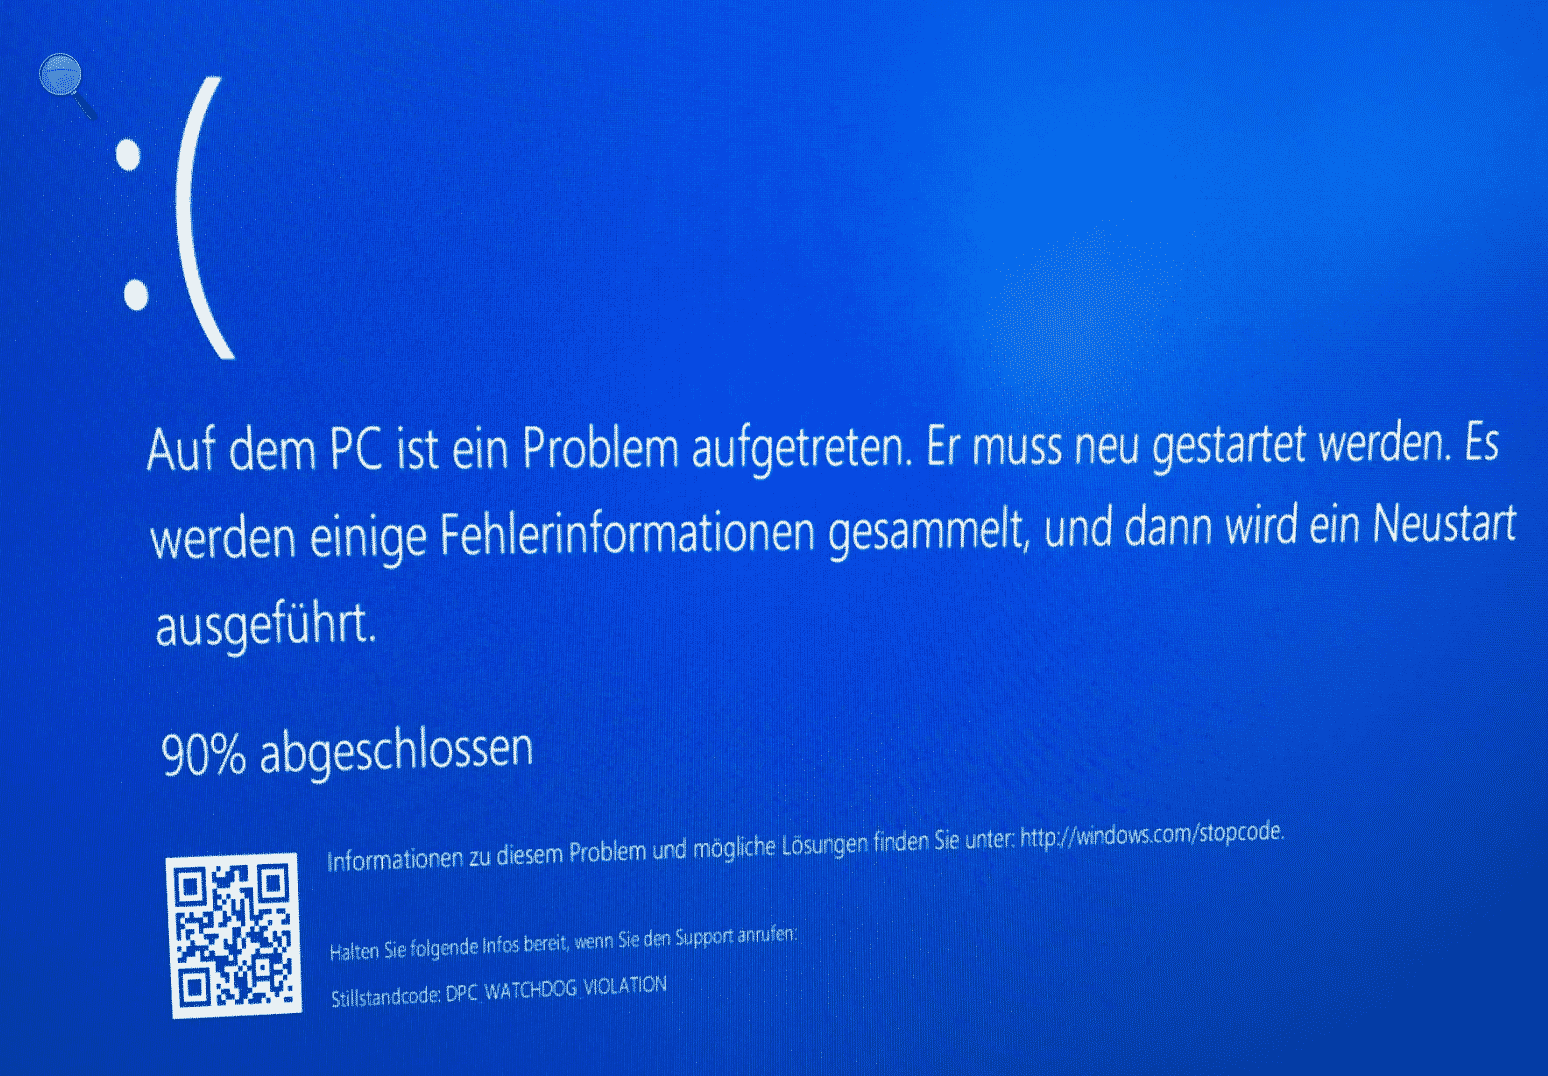 dpc-watchdog-violation-windows-10-bluescreen